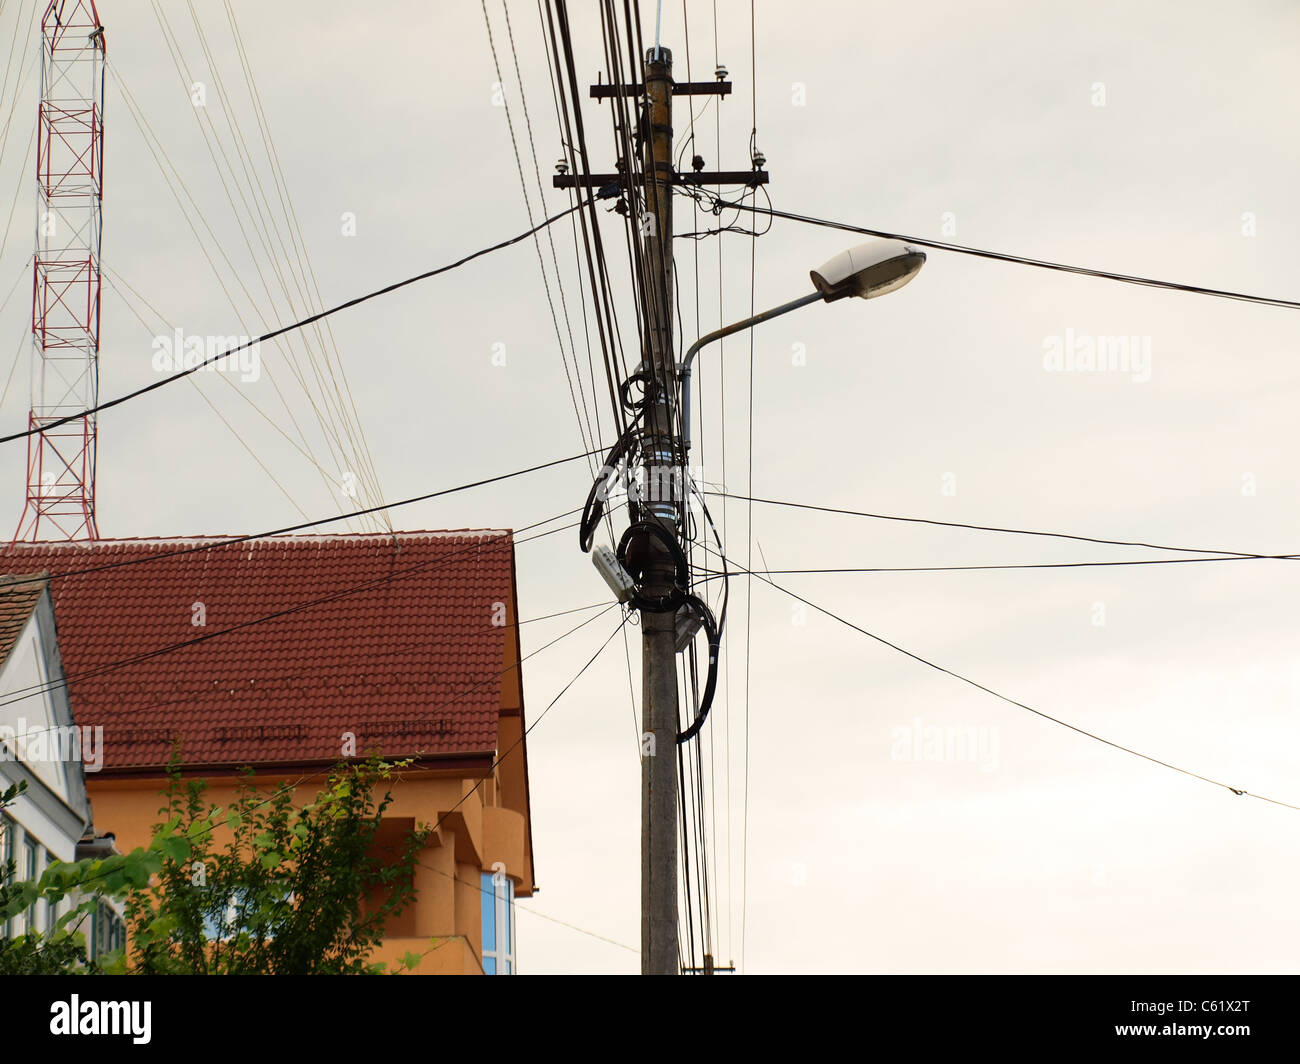 Aerial Cables Stock Photos Images Alamy Power Aerialwiringpicturejpg Street Pile Full Of Image